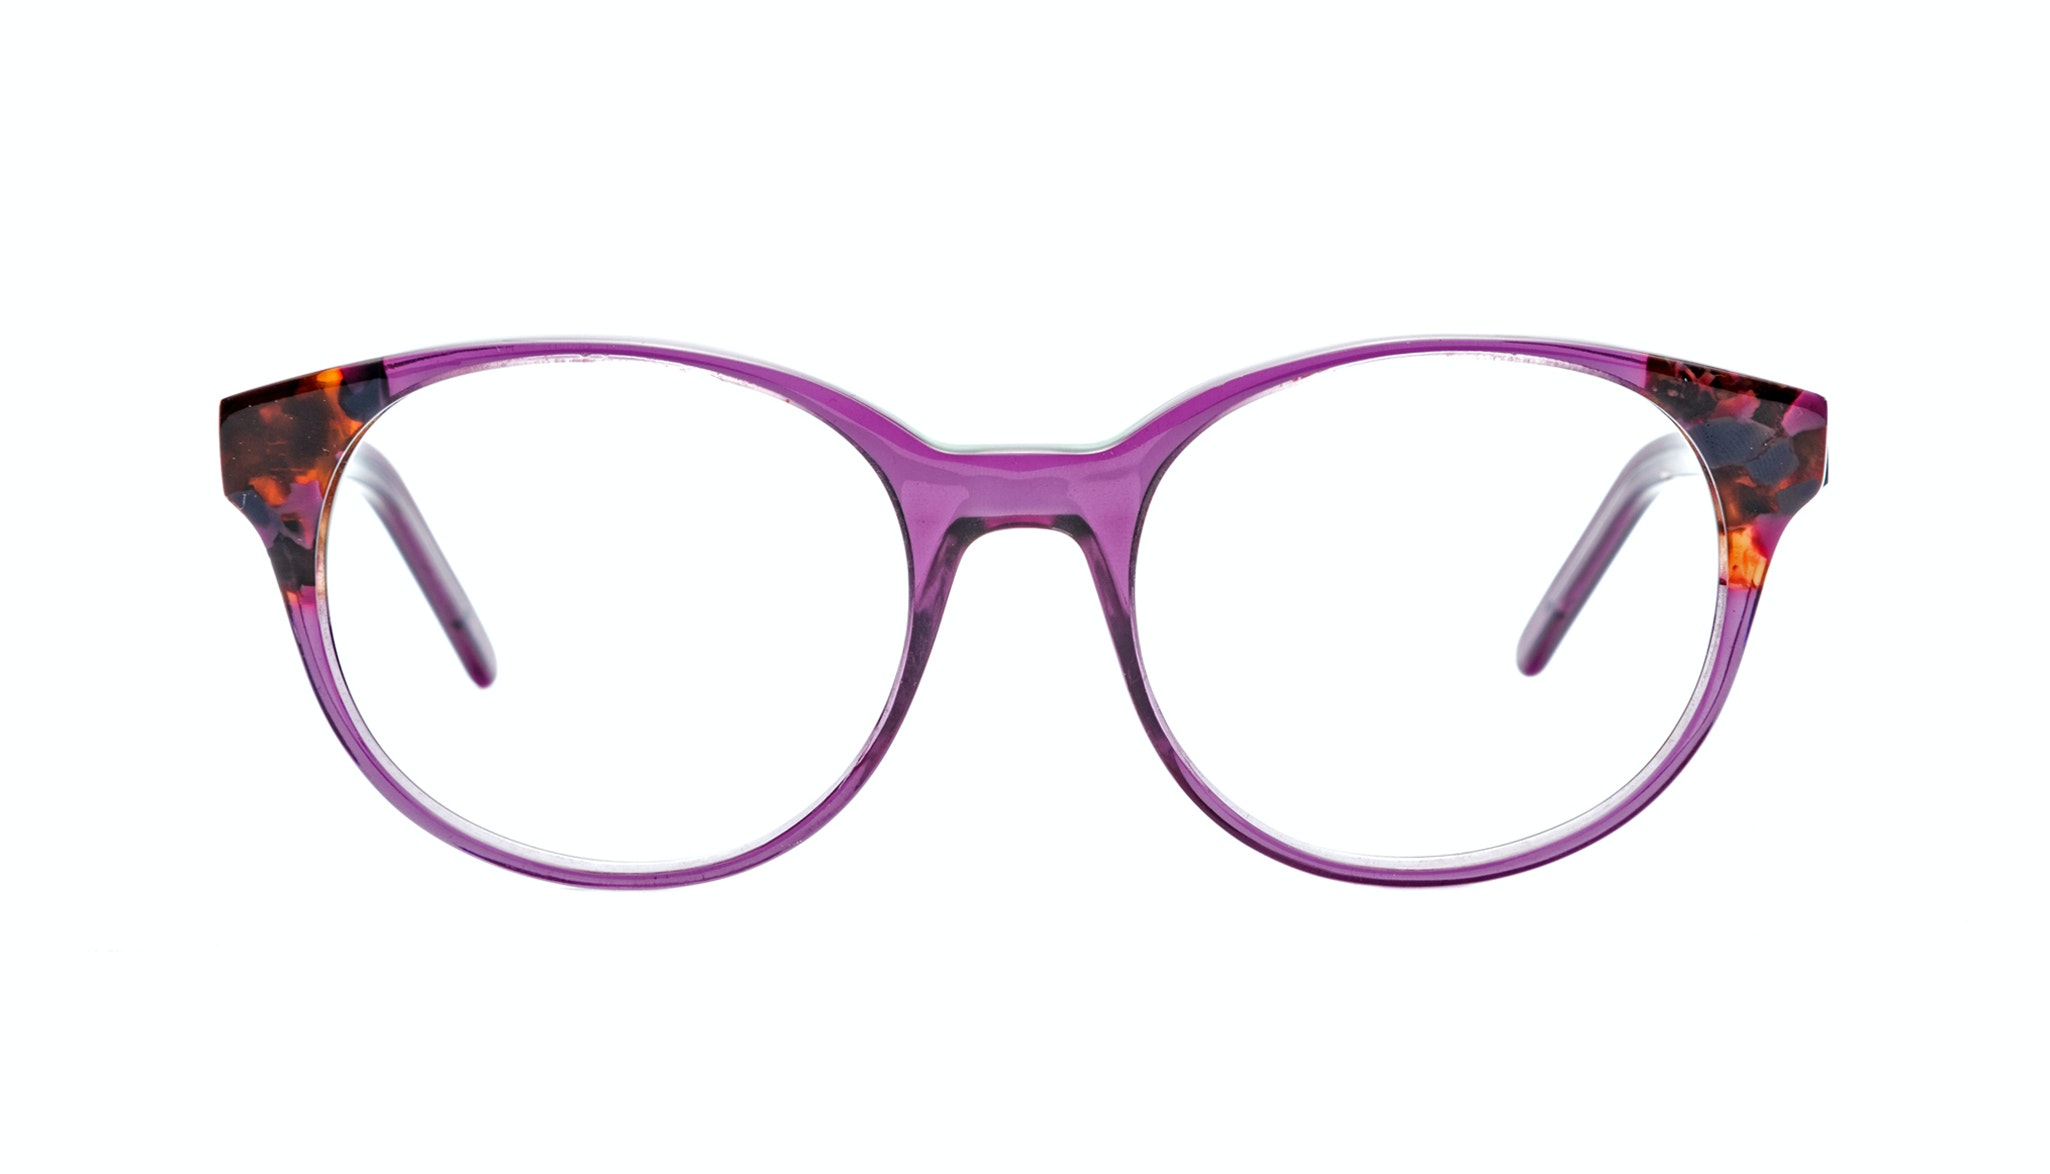 Affordable Fashion Glasses Round Eyeglasses Women Bis Pretty Purple